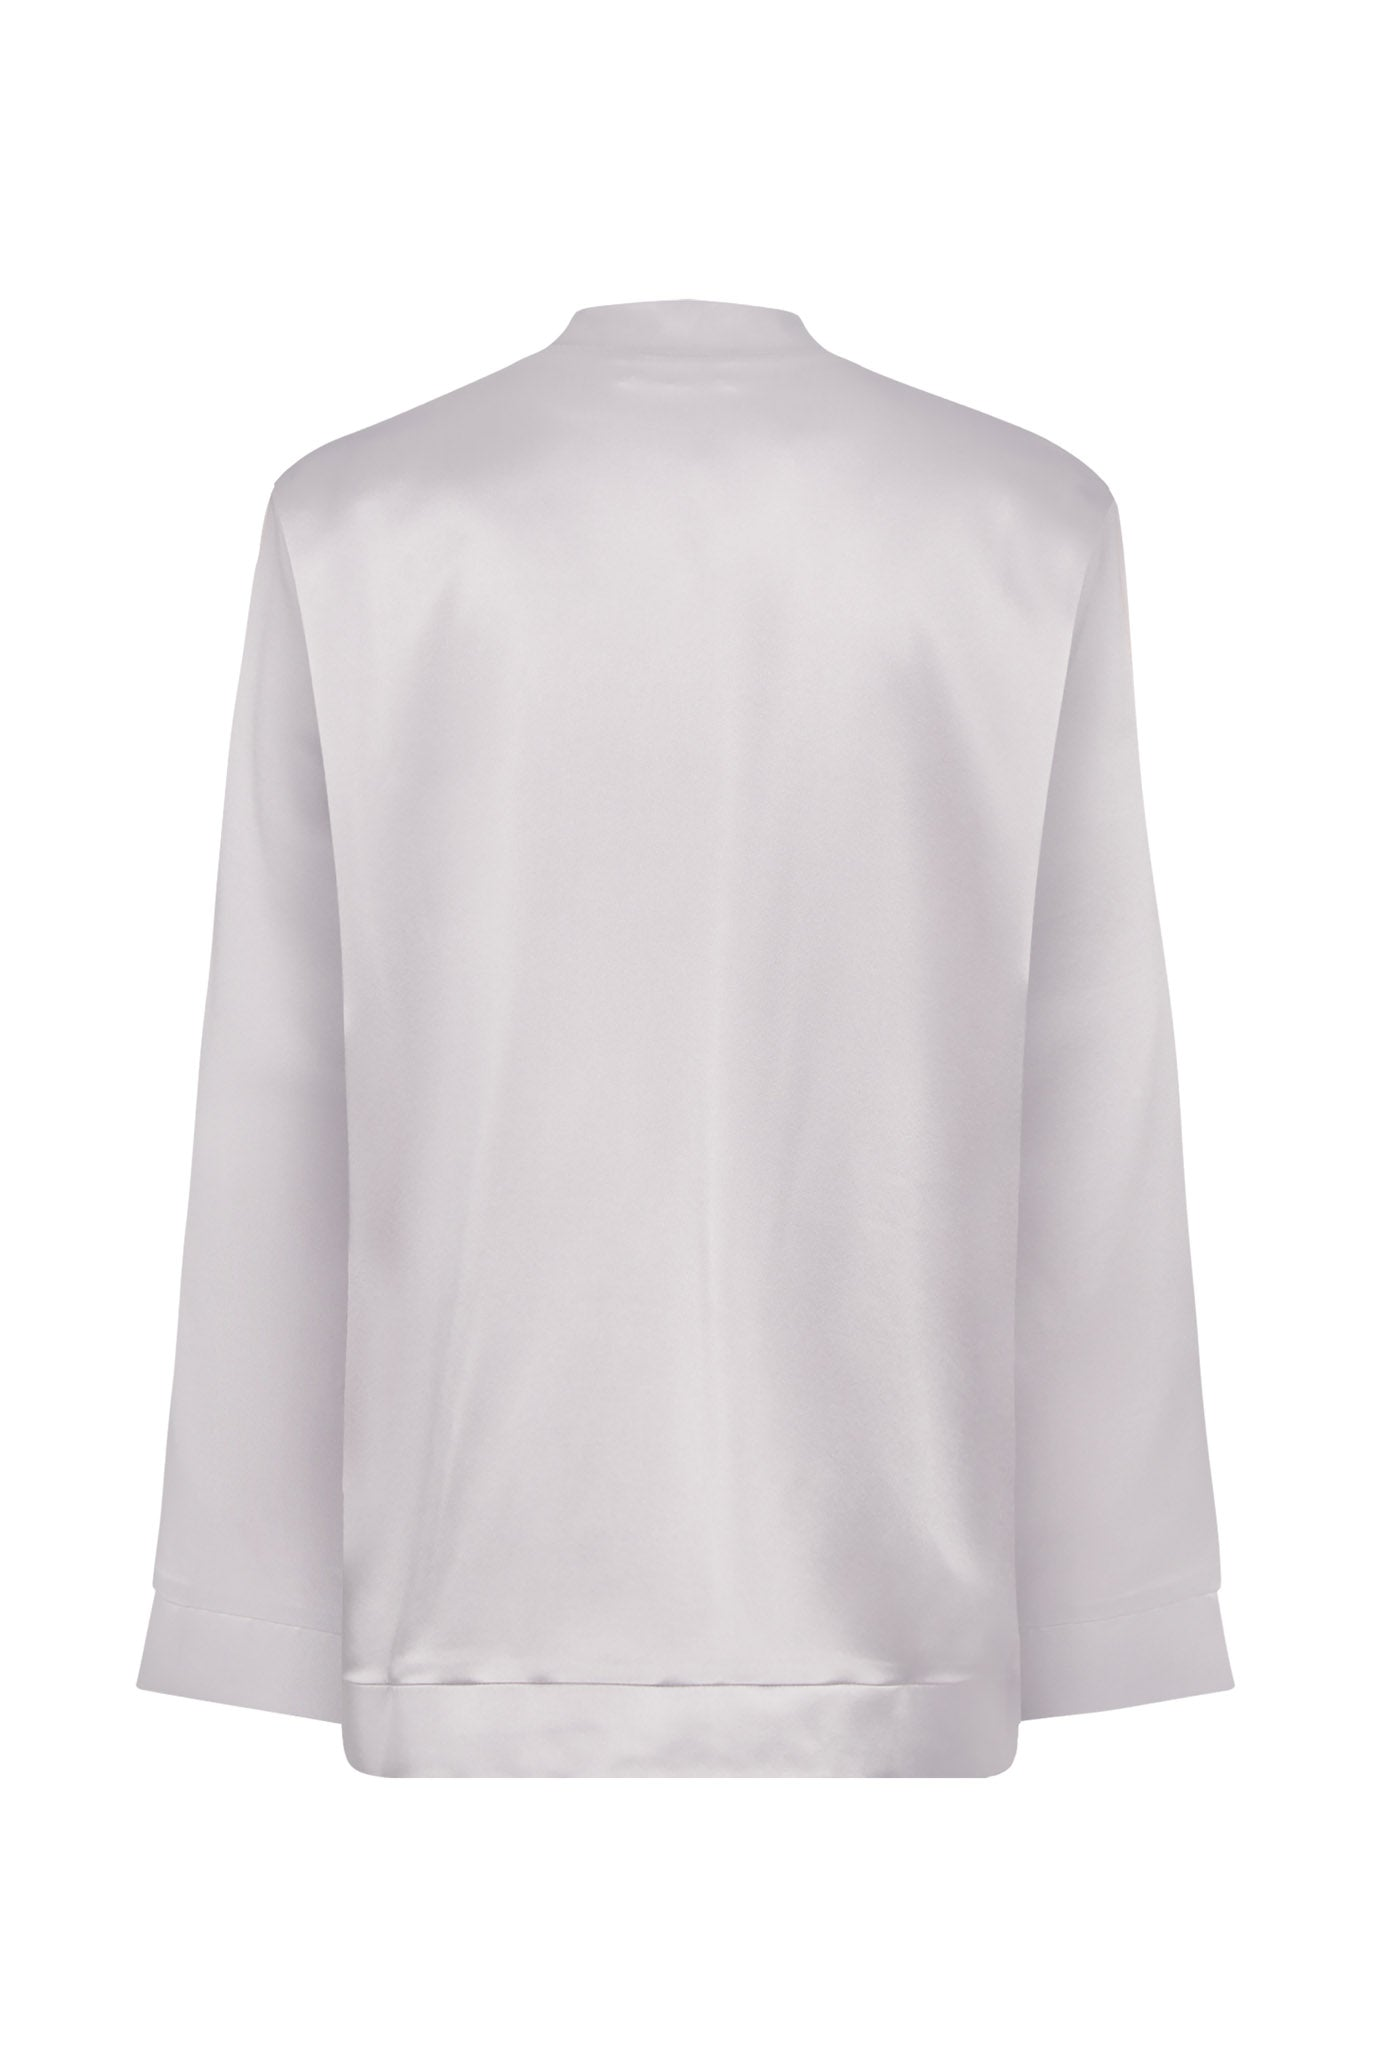 The Oversized Bomber - Silver & Dusky Pink Silk - SERENA BUTE